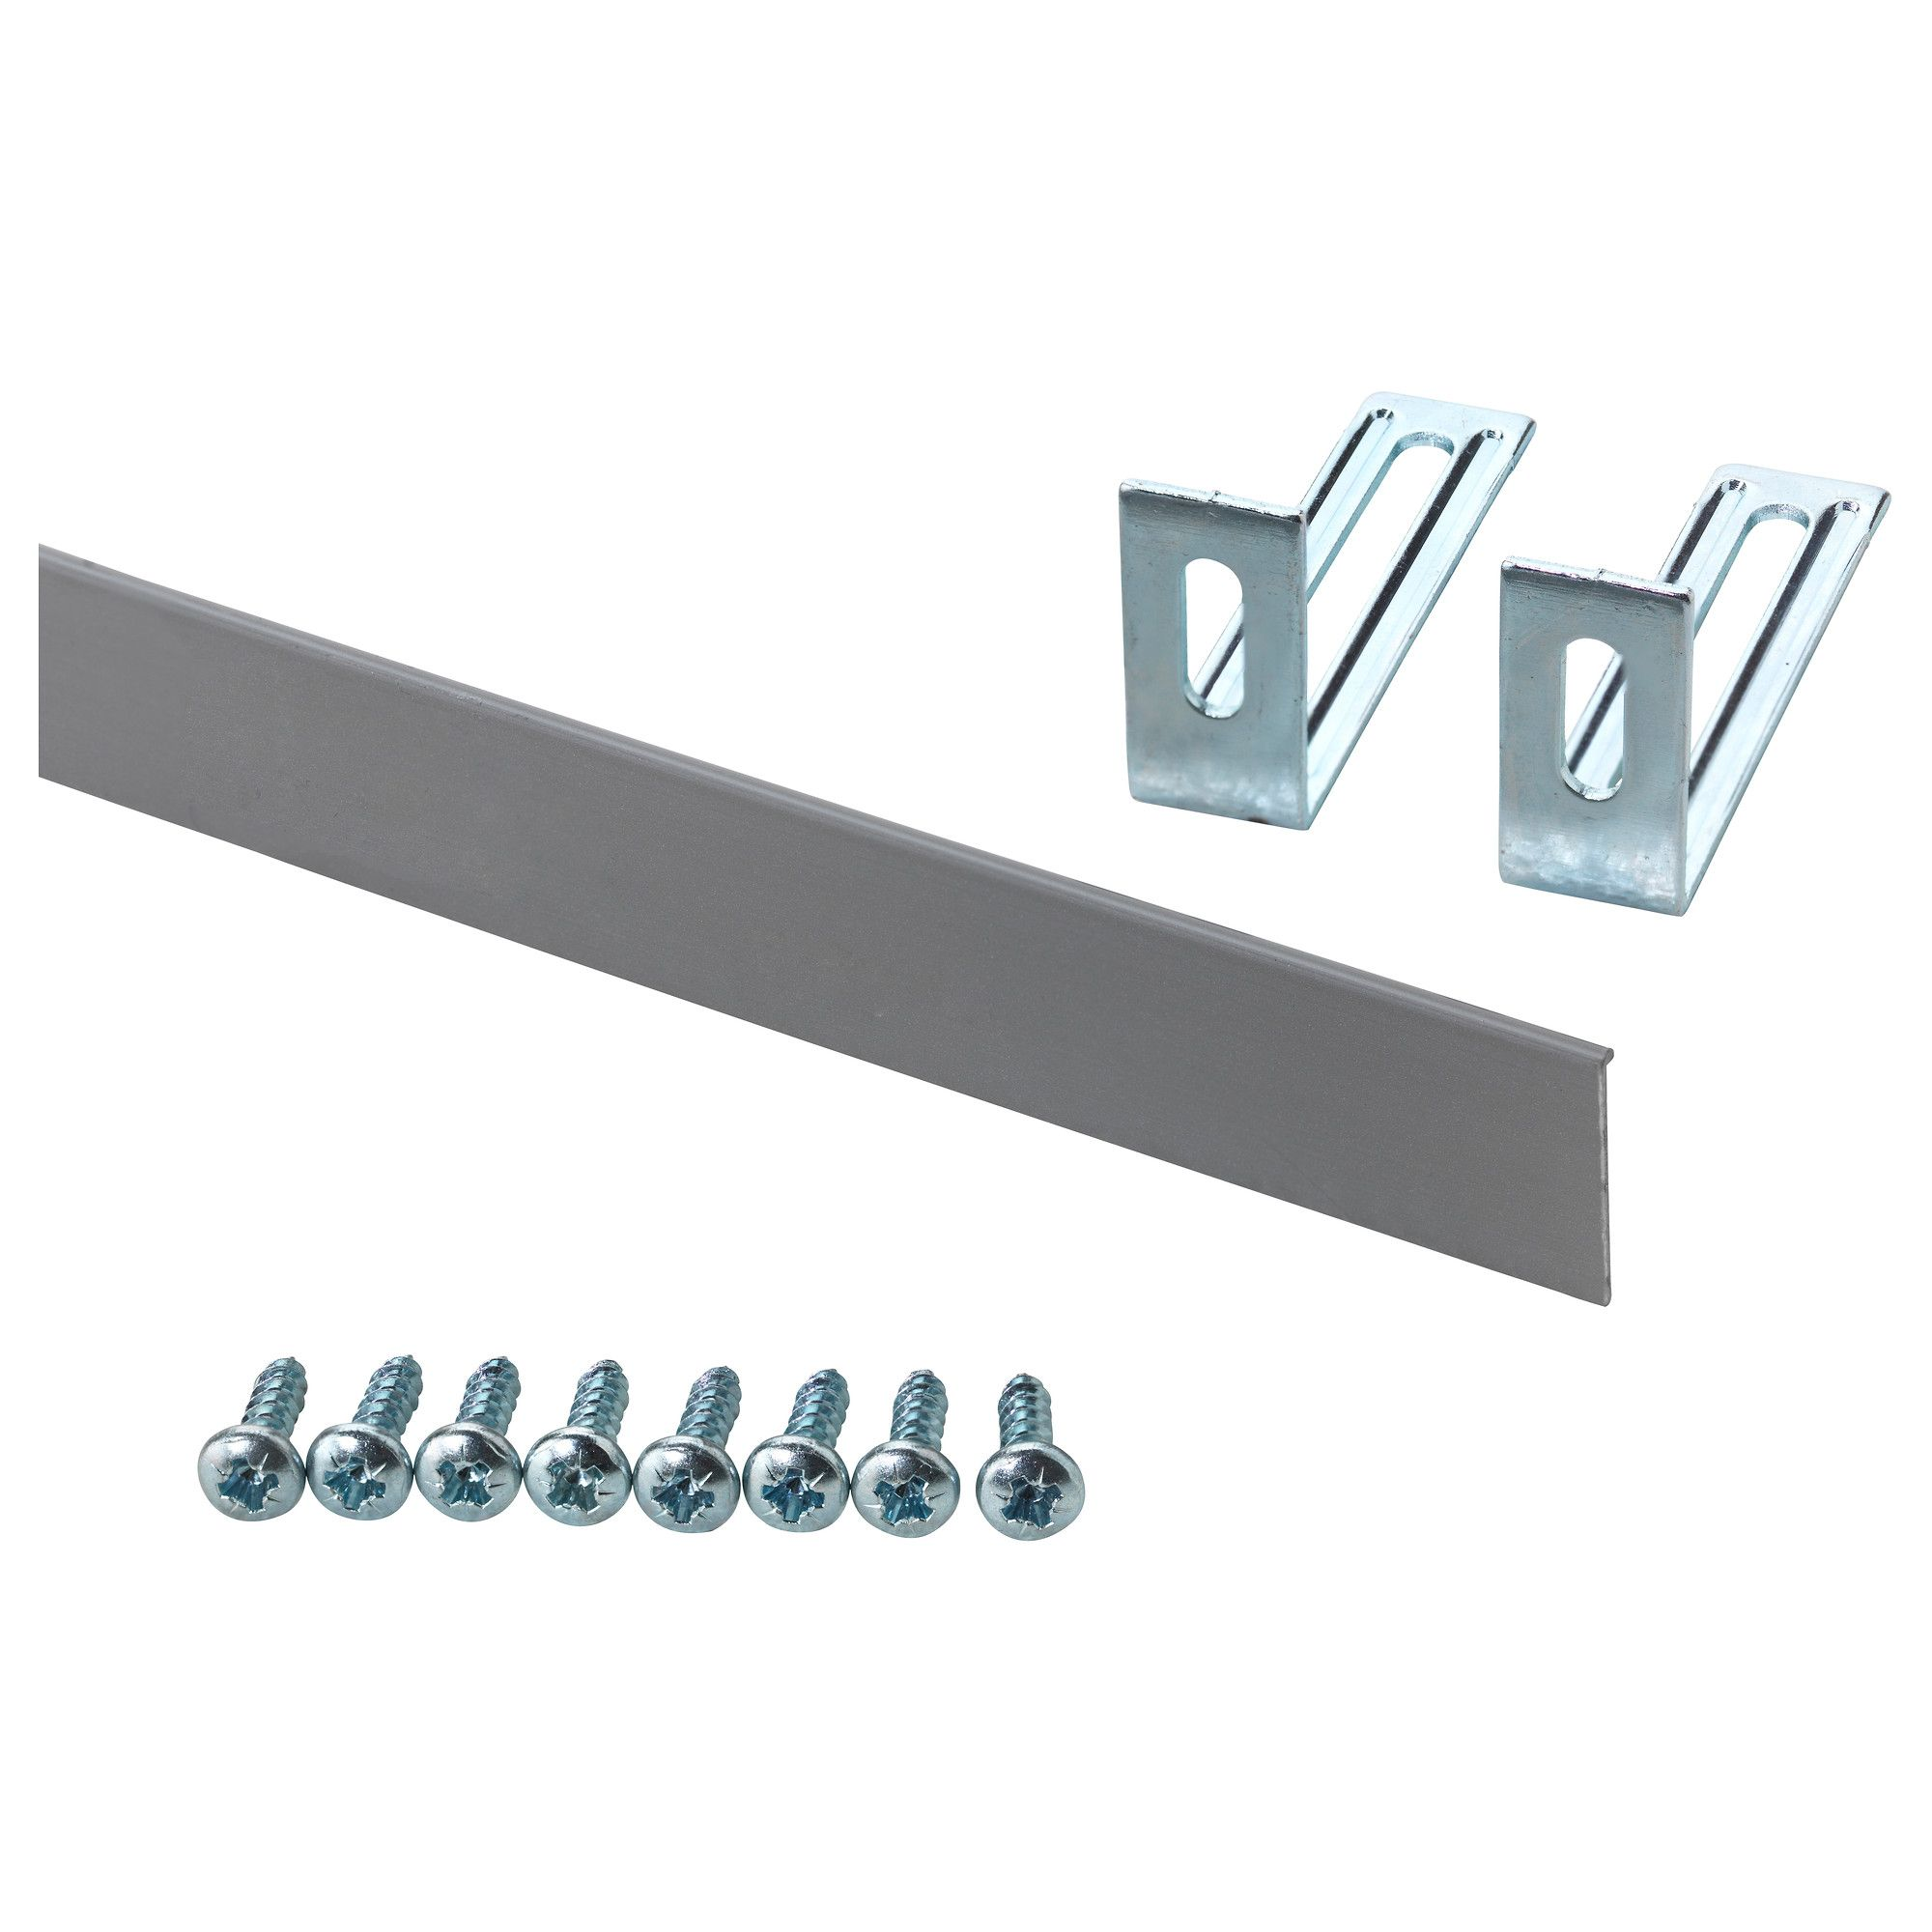 Forbattra Stainless Steel Colour Cover Strip And Fittings Ikea Ikea Steel Stainless Steel Appliances